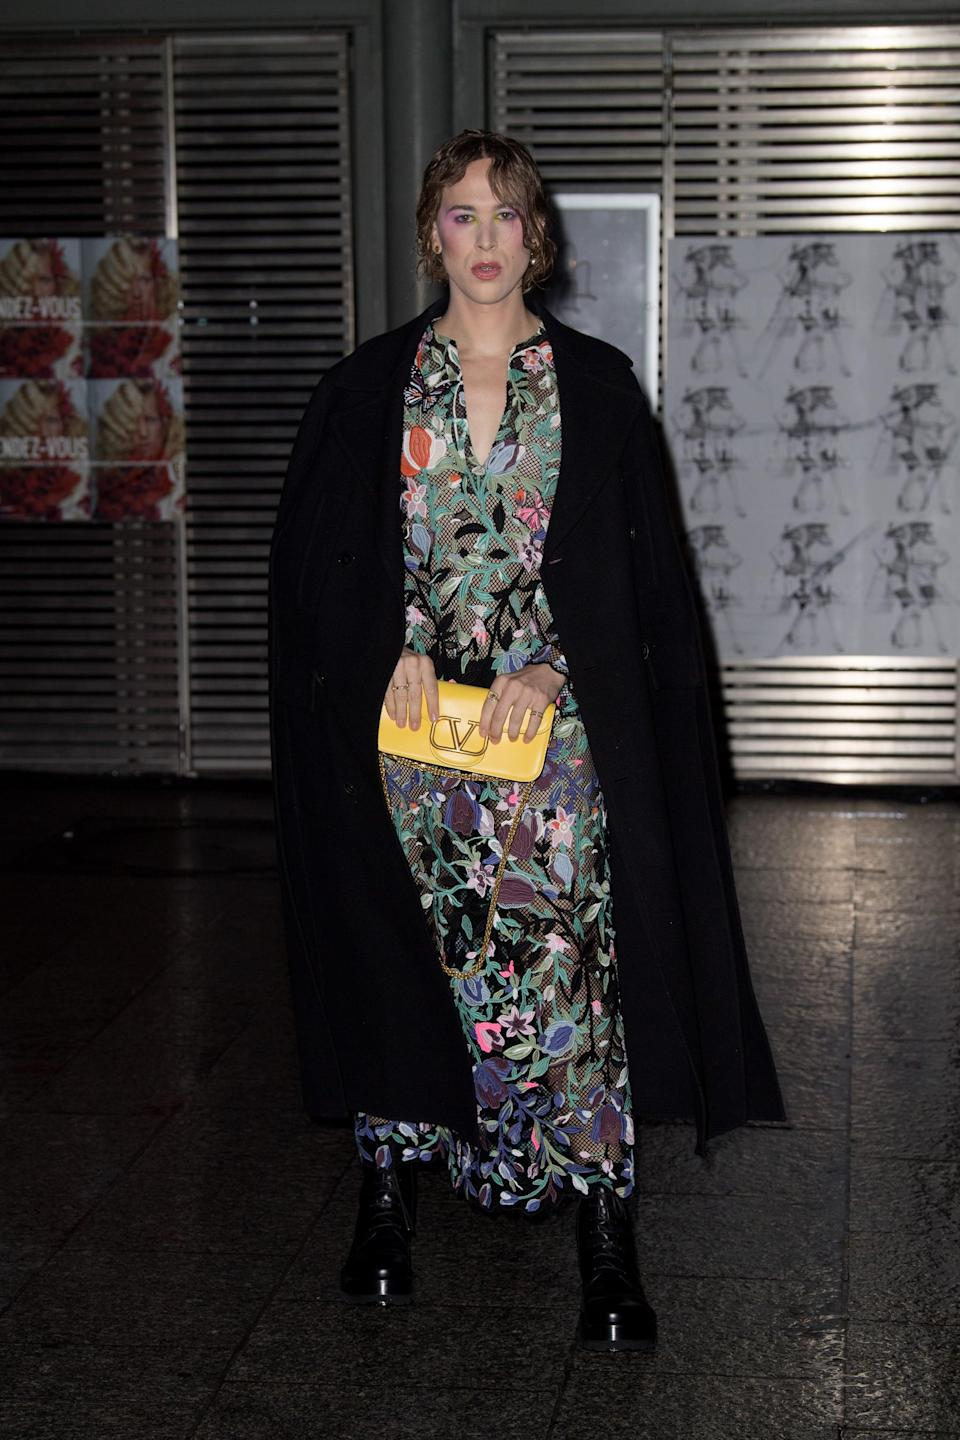 <p>She wore a subtly sheer floral dress, bright yellow clutch, boots, and long coat draped over her shoulders.</p>